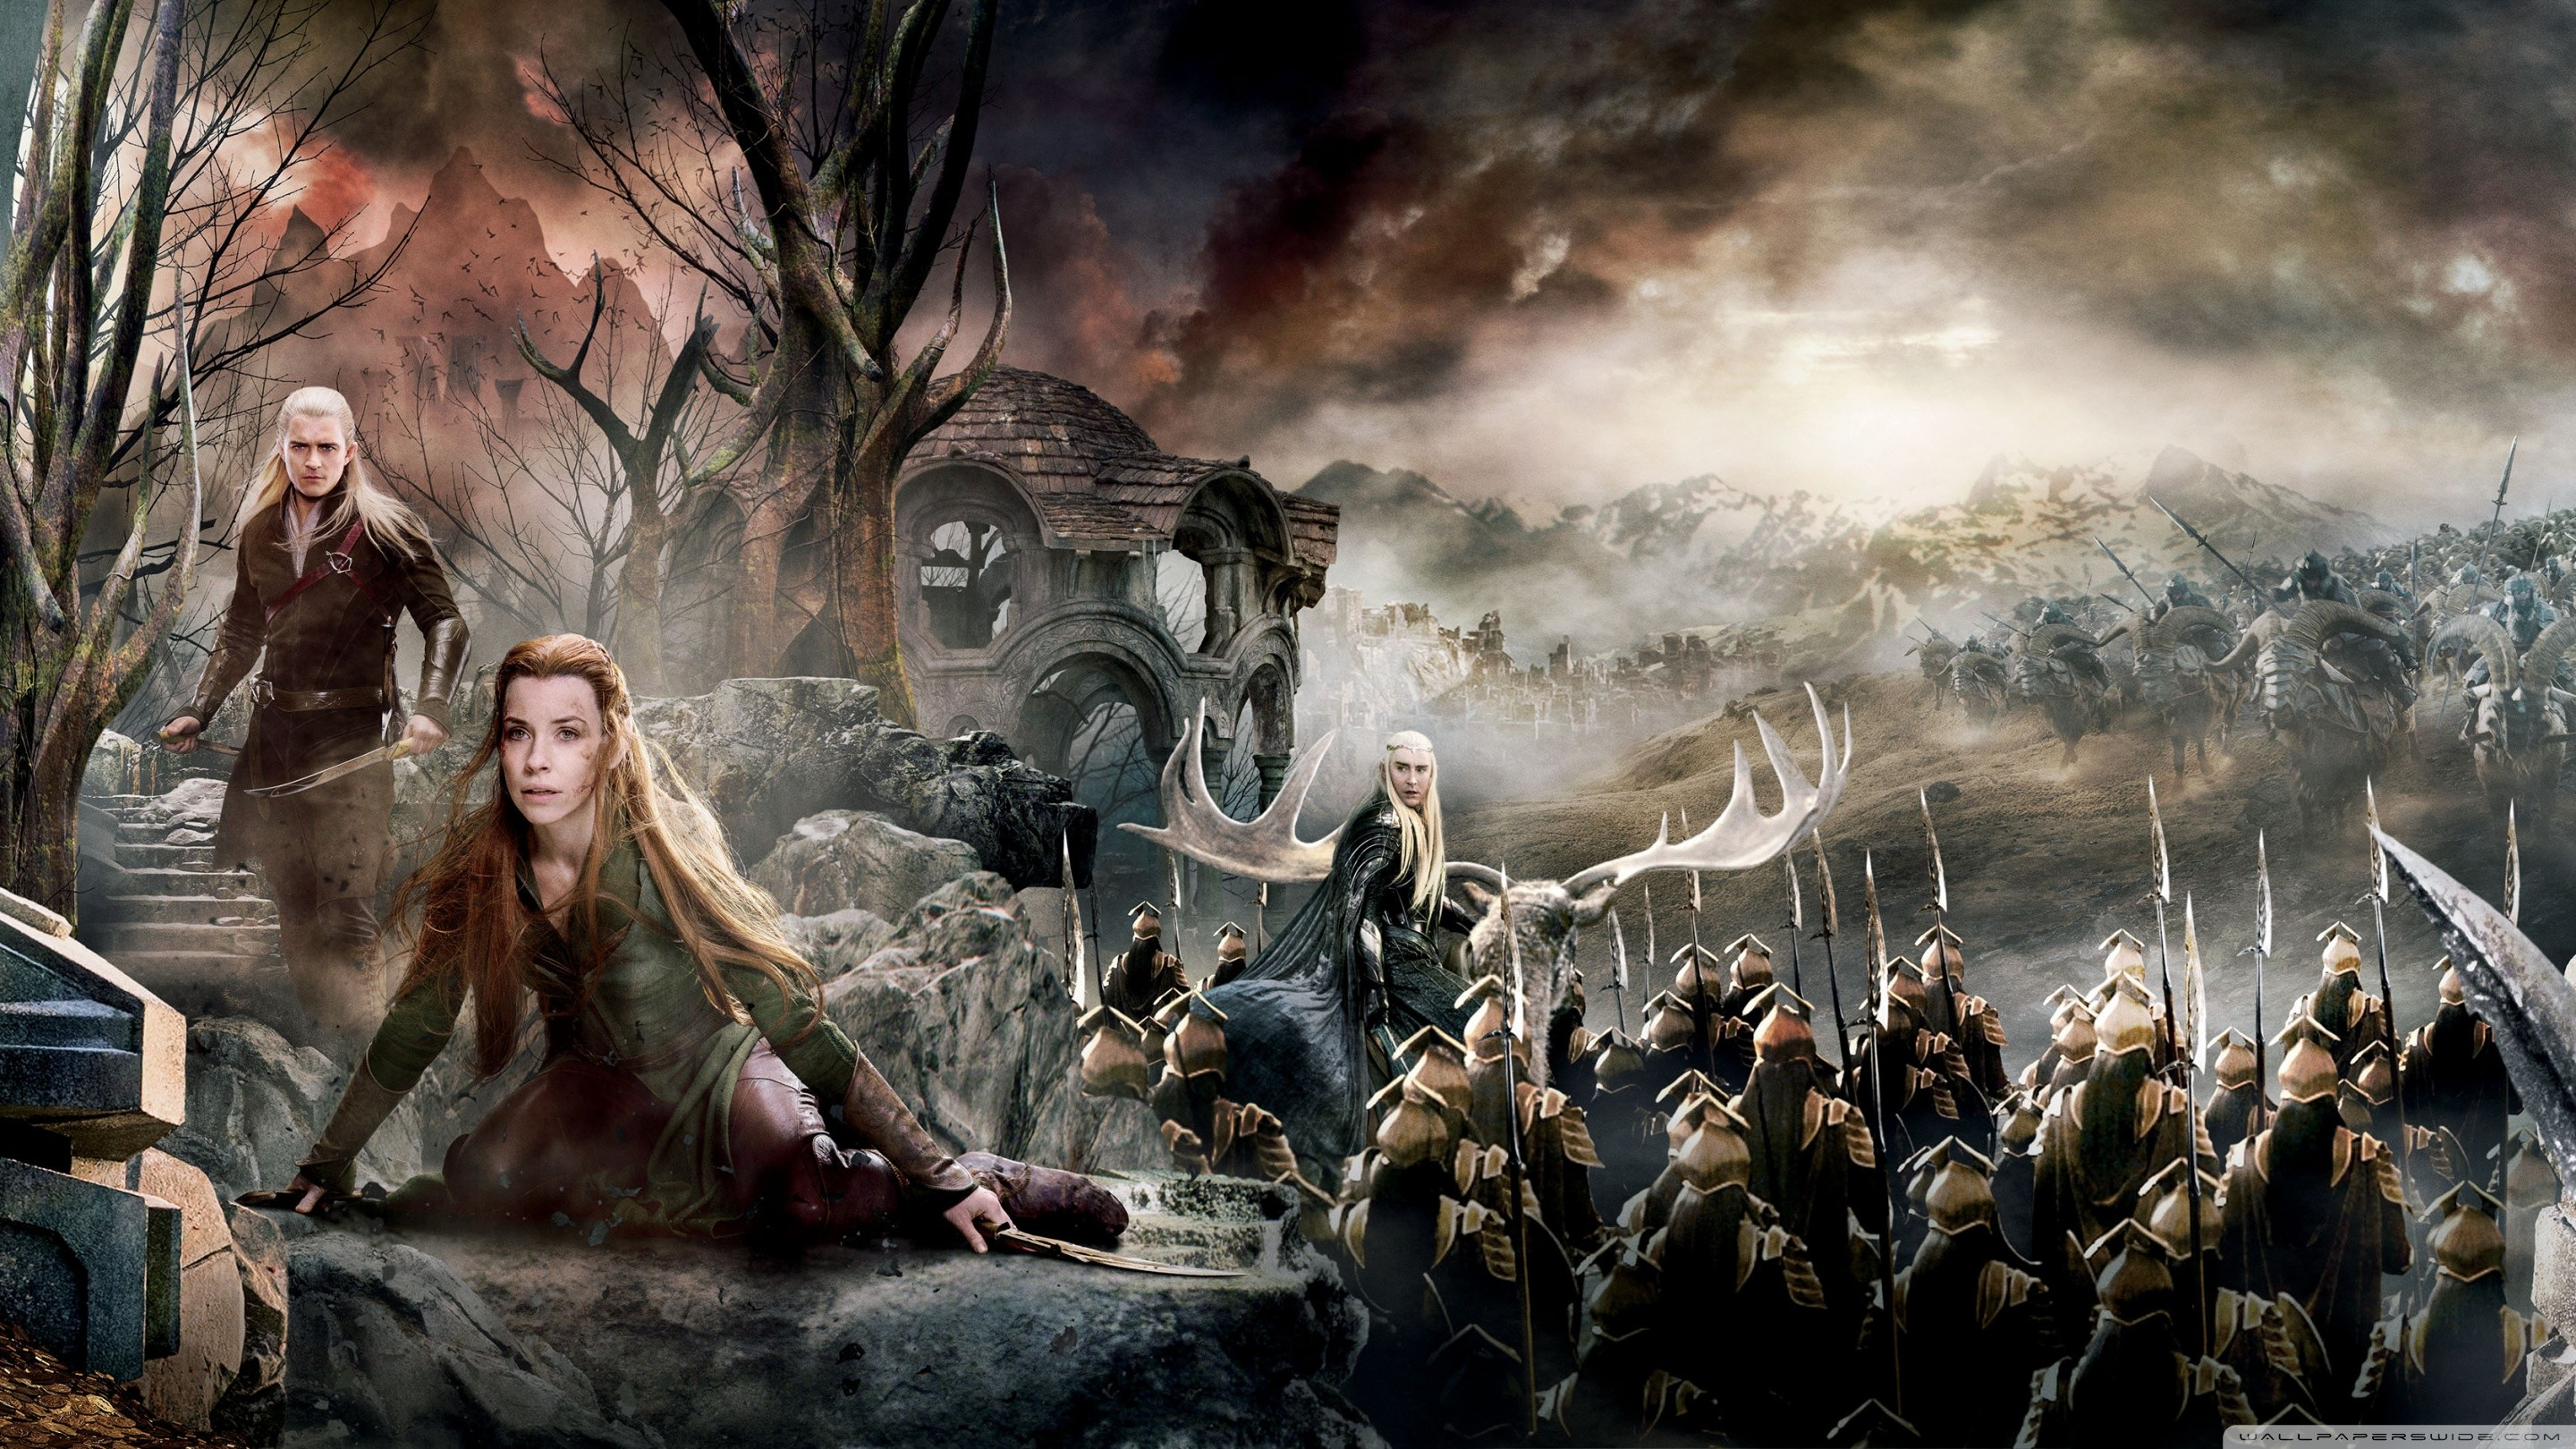 2880x1620 The Hobbit The Battle Of The Five Armies Picture As Wallpaper HD